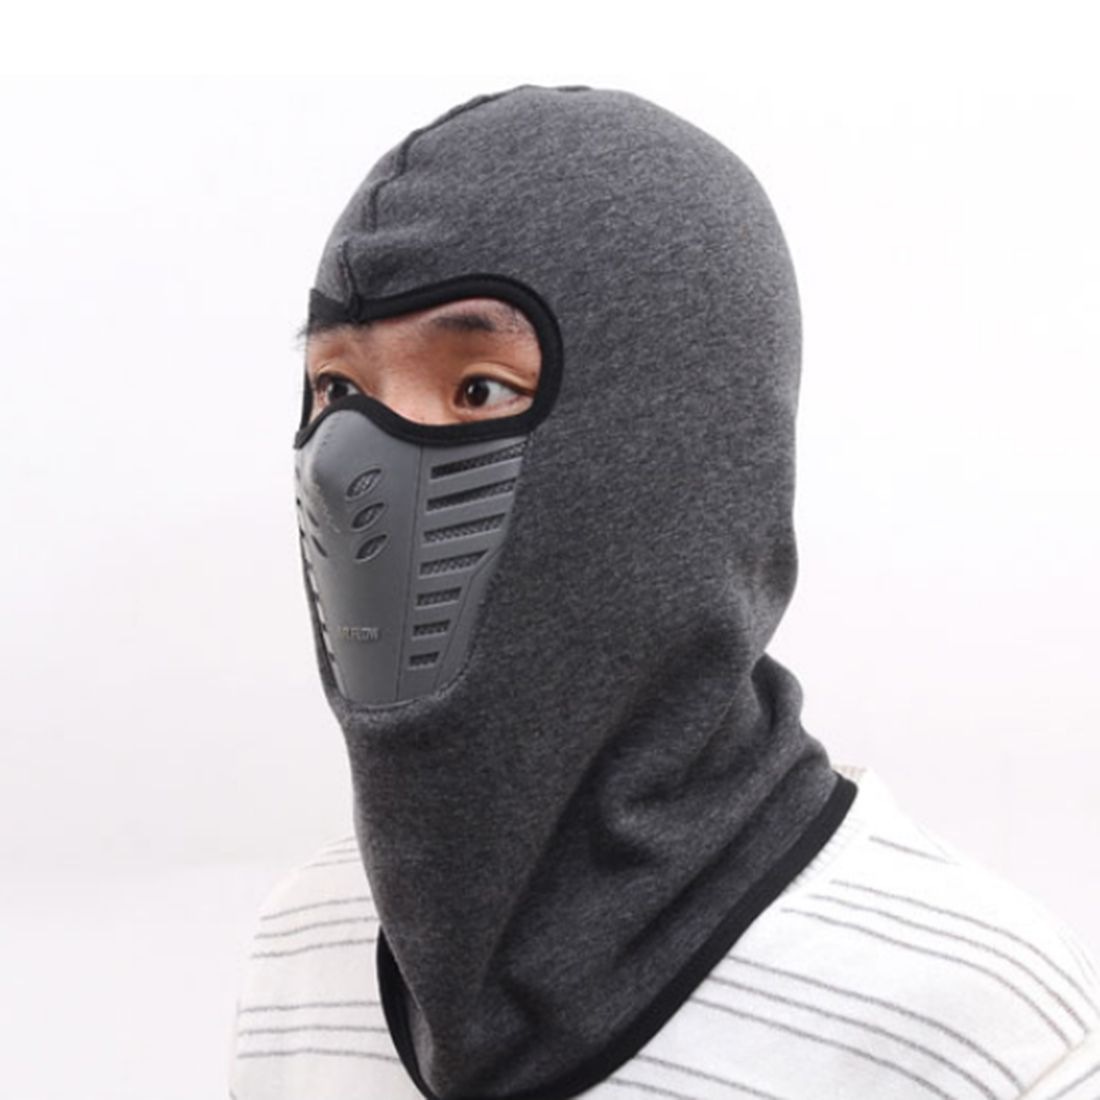 Accessories Full Face Mask Windproof Longer Neck Cover Hood For Sun Protections